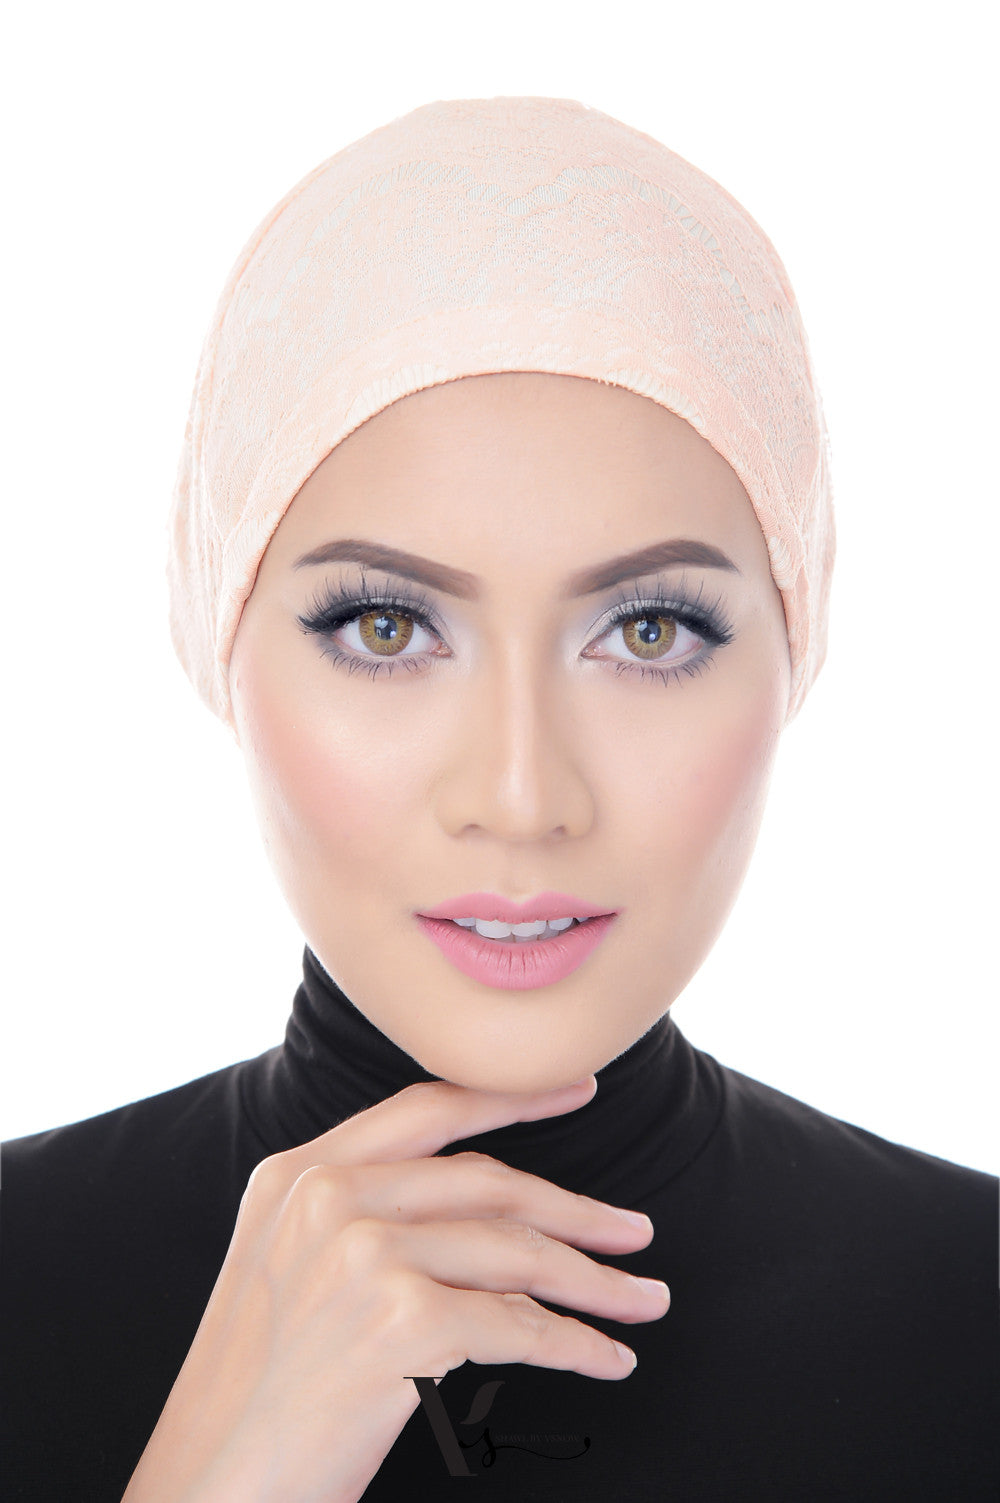 Tie Back Lace Bonnet Cap in Whipped Peach